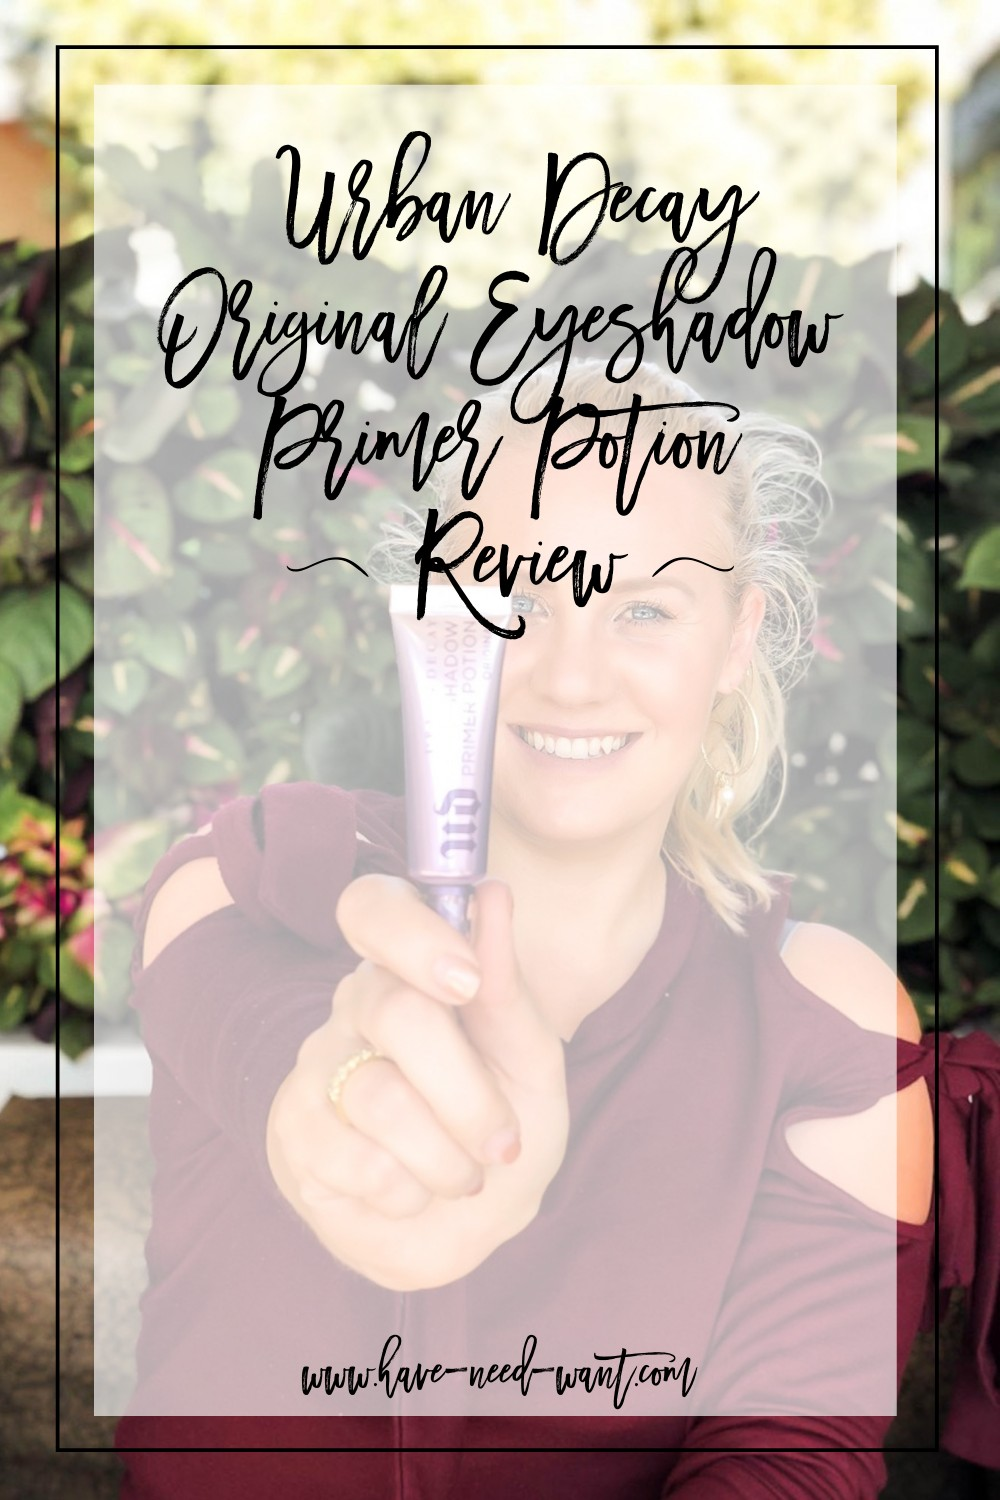 Urban Decay Original Eyeshadow Primer Potion Review. Click on the photo to read the post! | Have Need Want #beautyreview #eyeshadowprimer #urbandecay #urbandecaybeauty #productreview